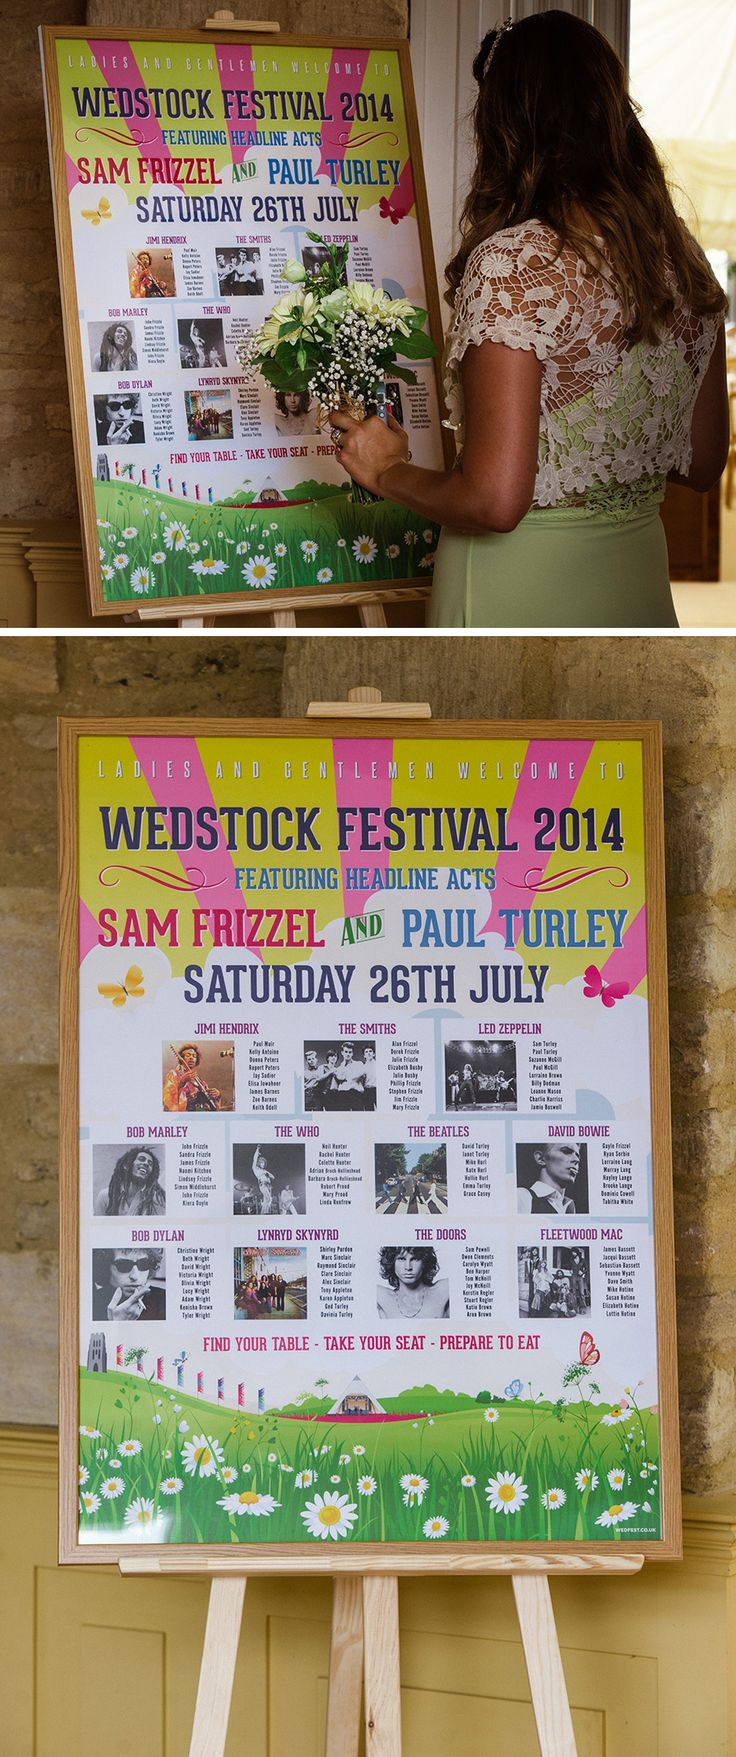 wedstock festival wedding table plan http://www.wedfest.co/sam-pauls-wedstock-music-festival-wedding/